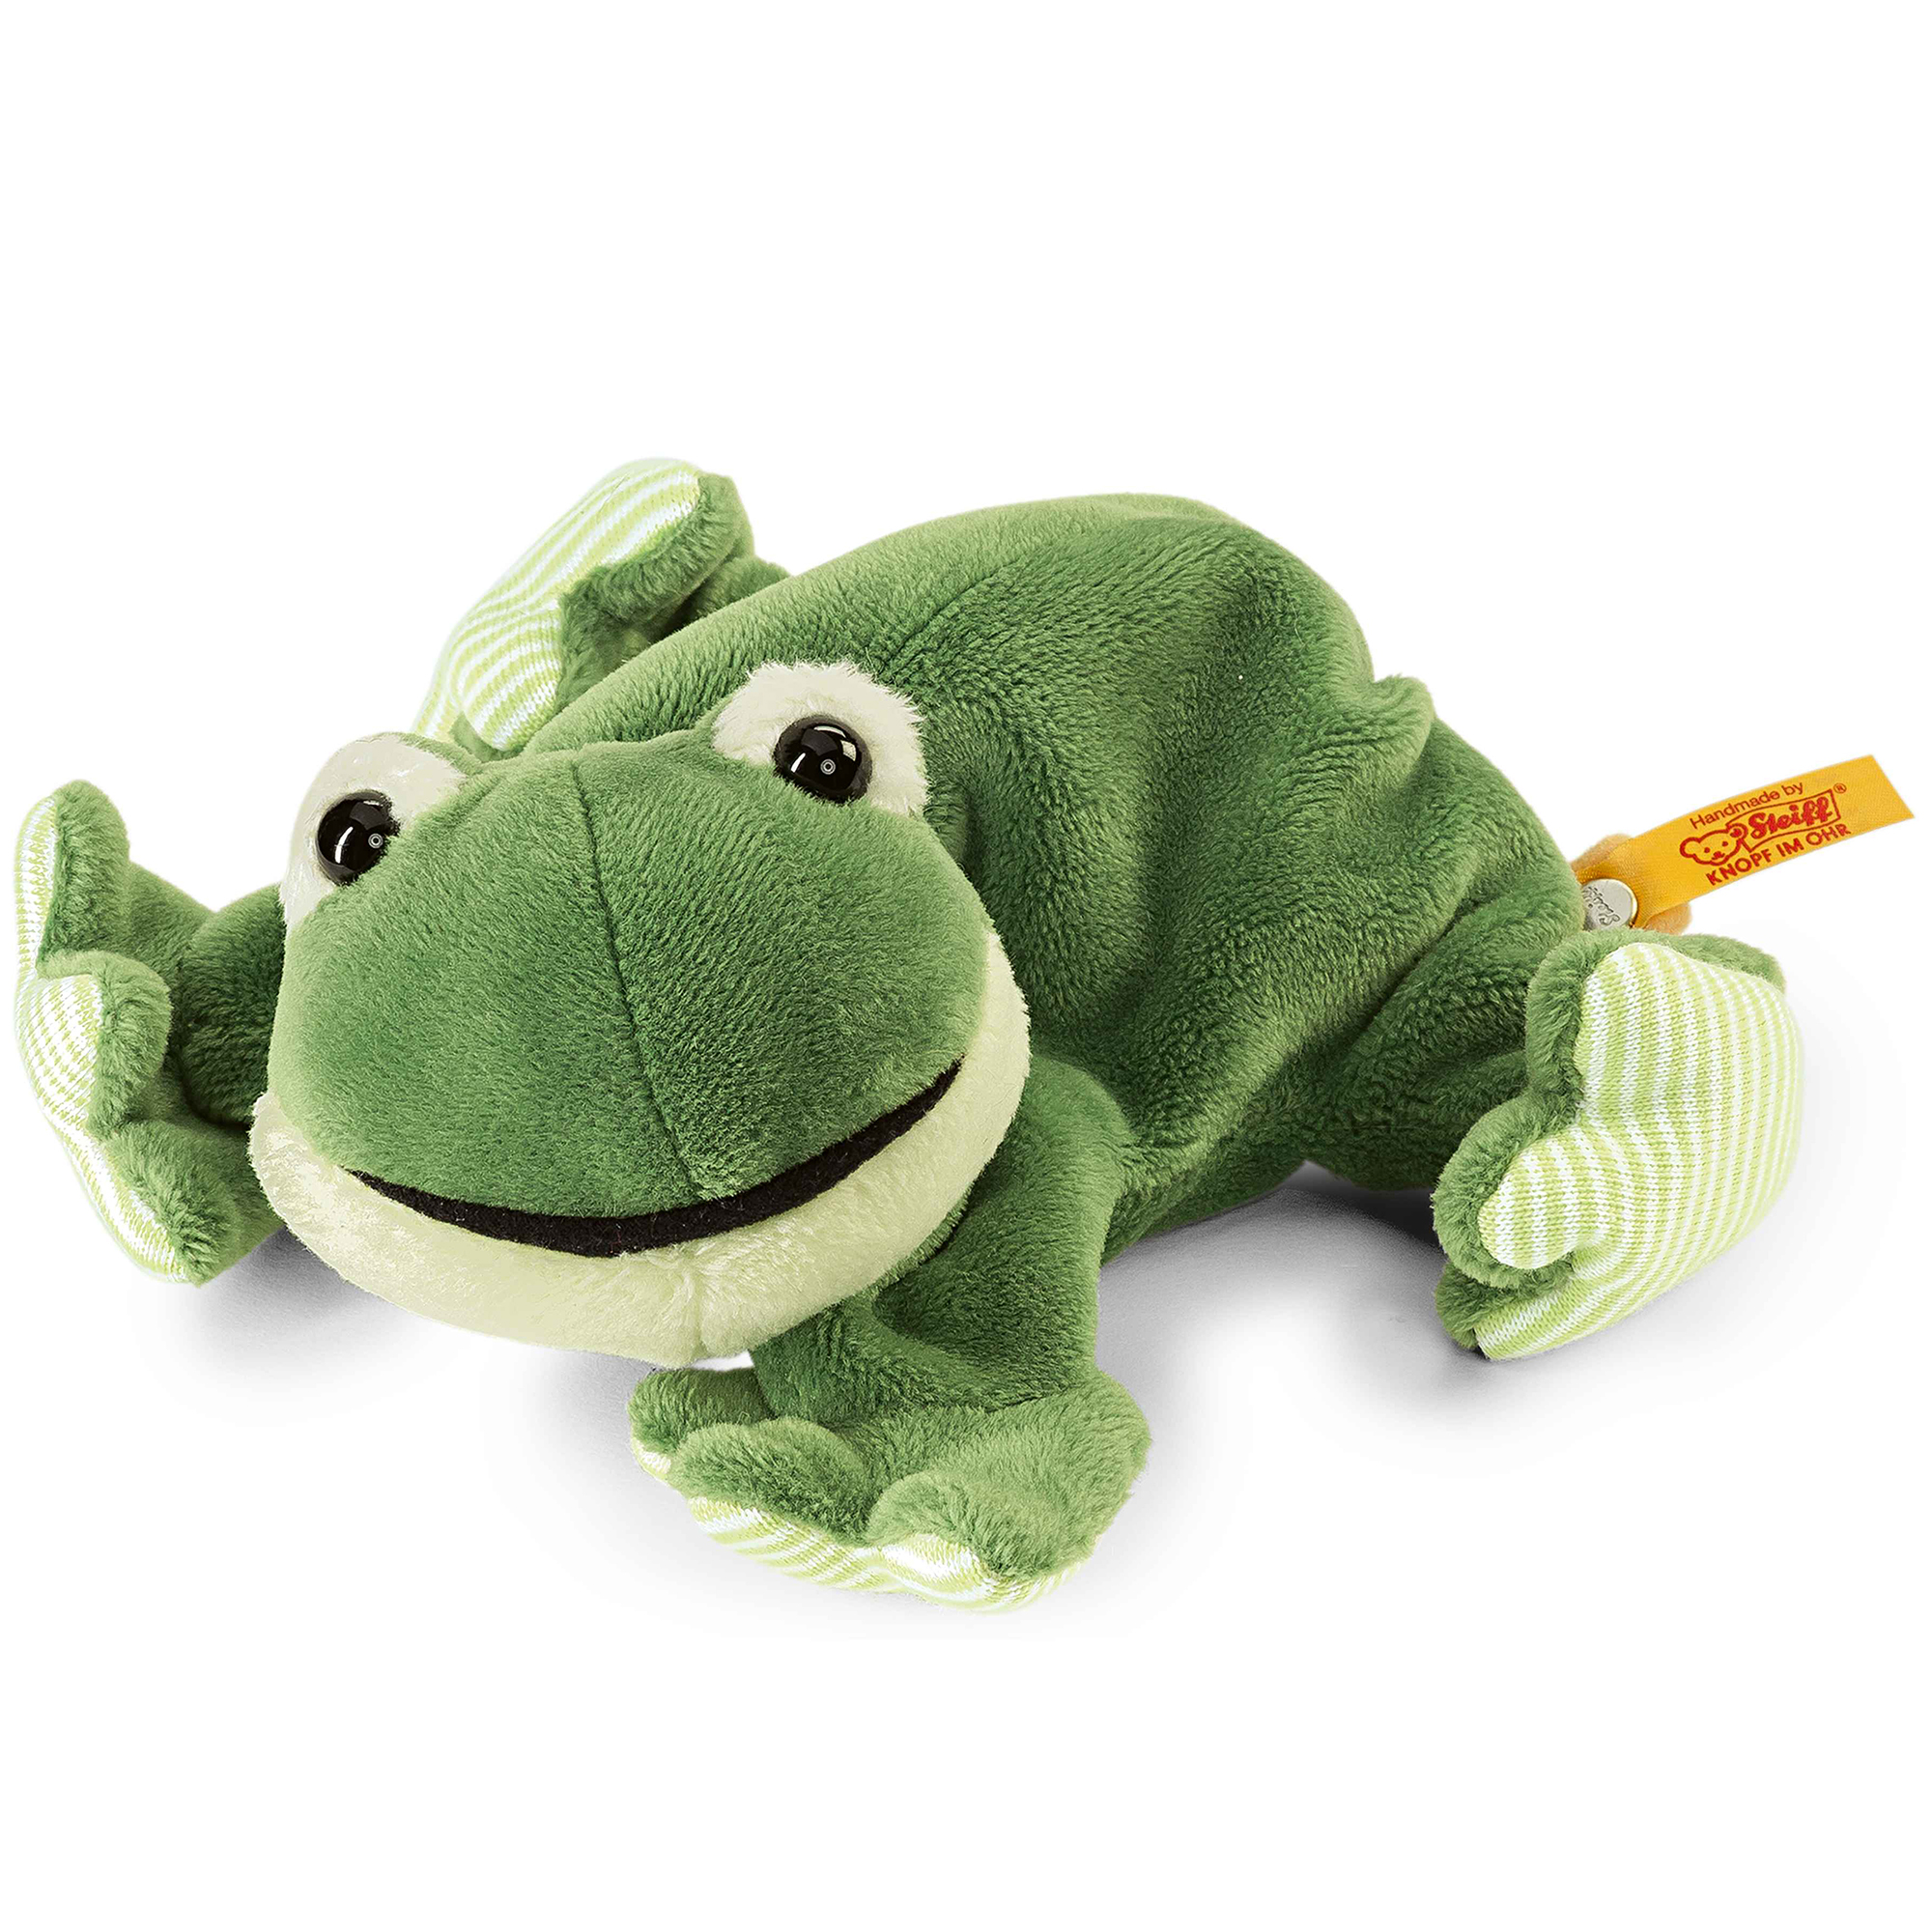 Steiff Cheeky Cappy Frog Soft Toy